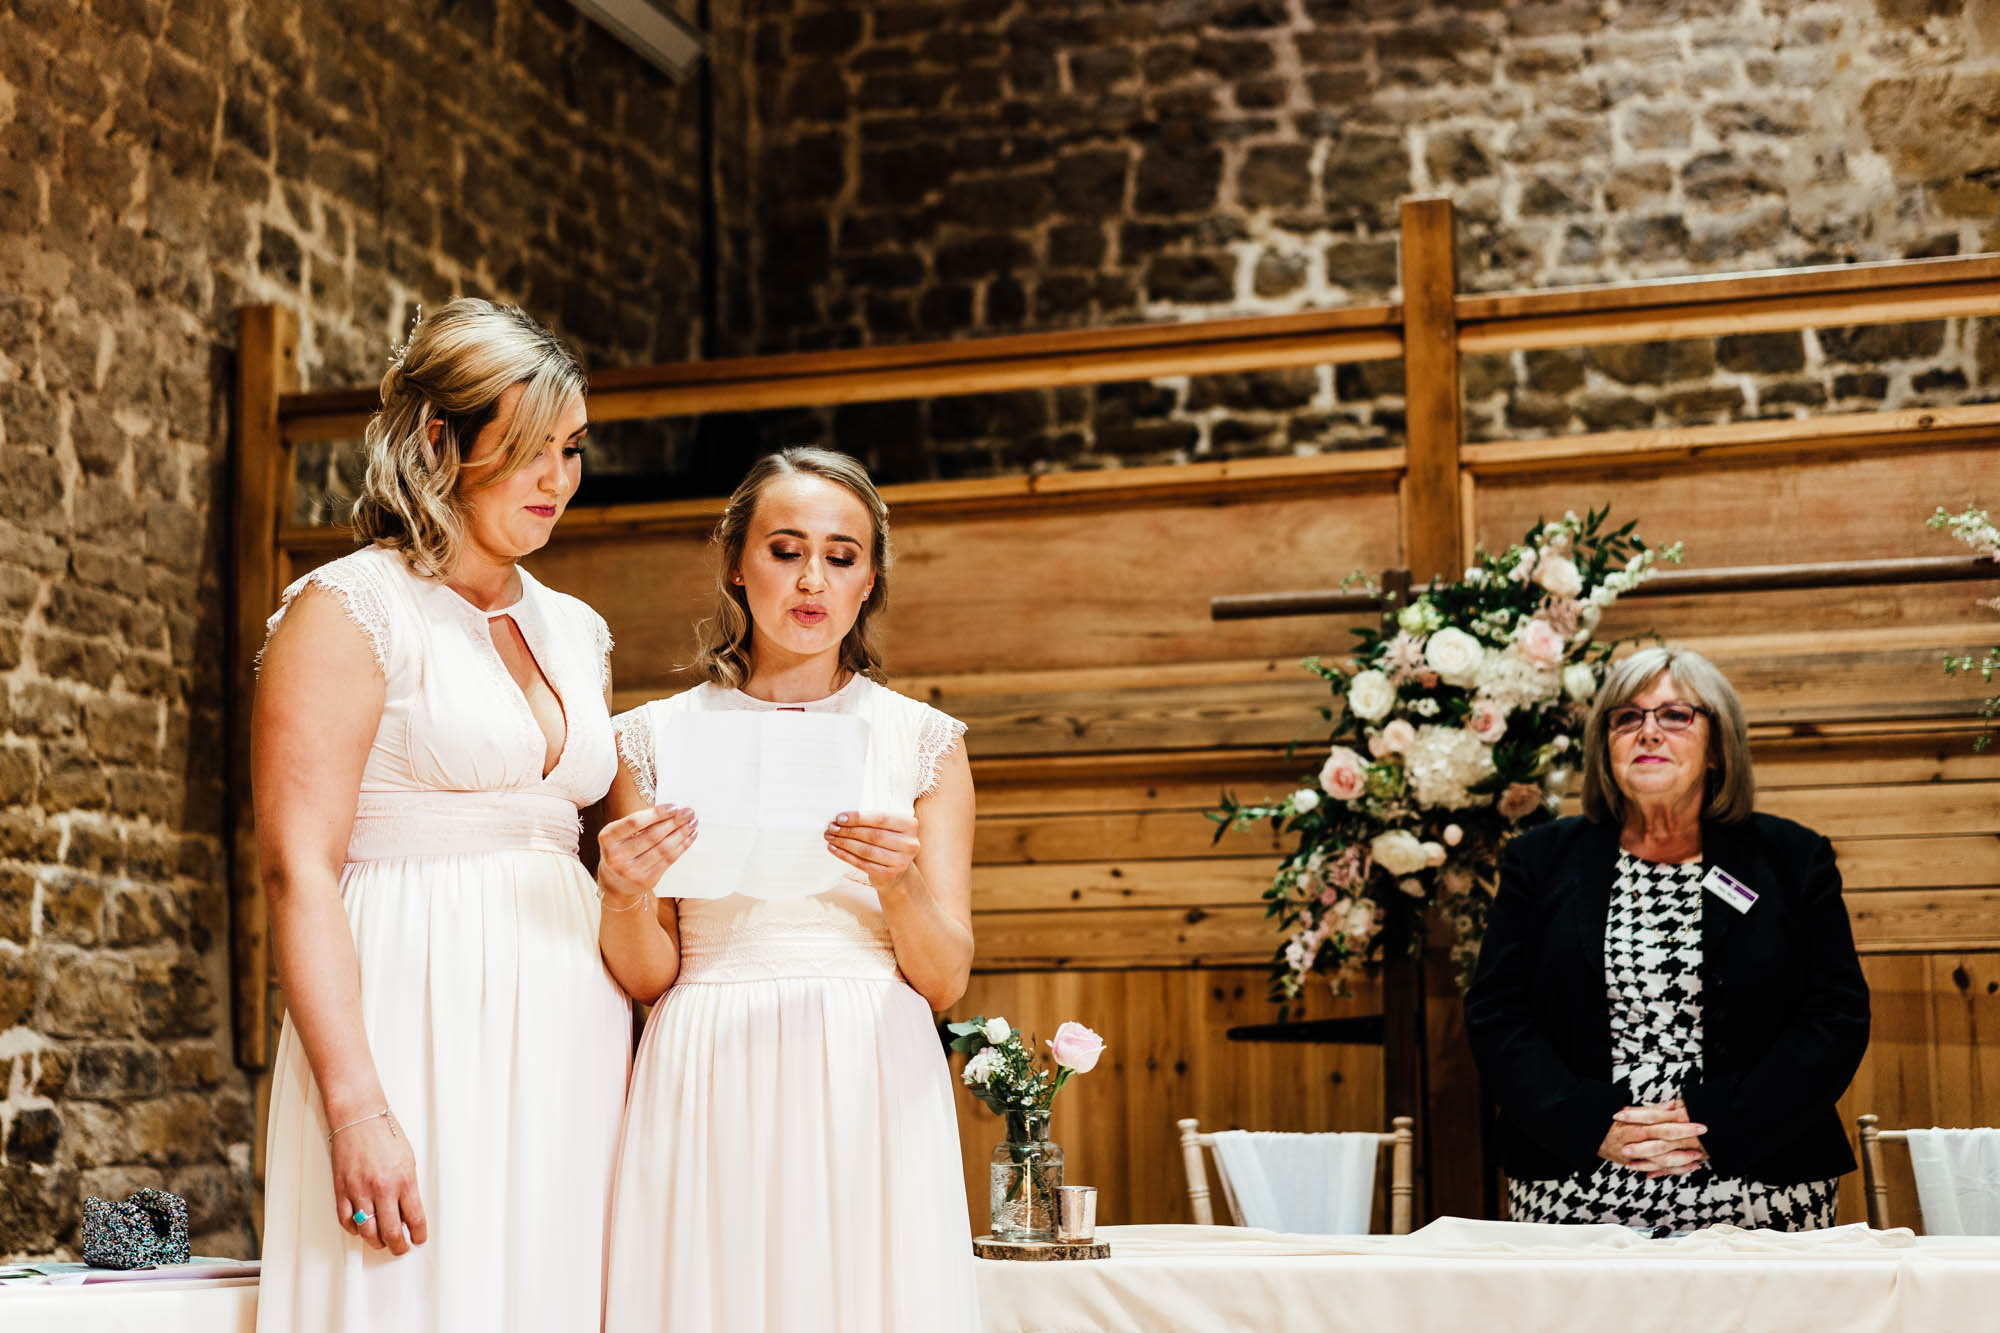 wedding-at-the-barns-at-hunsbury-hill-19